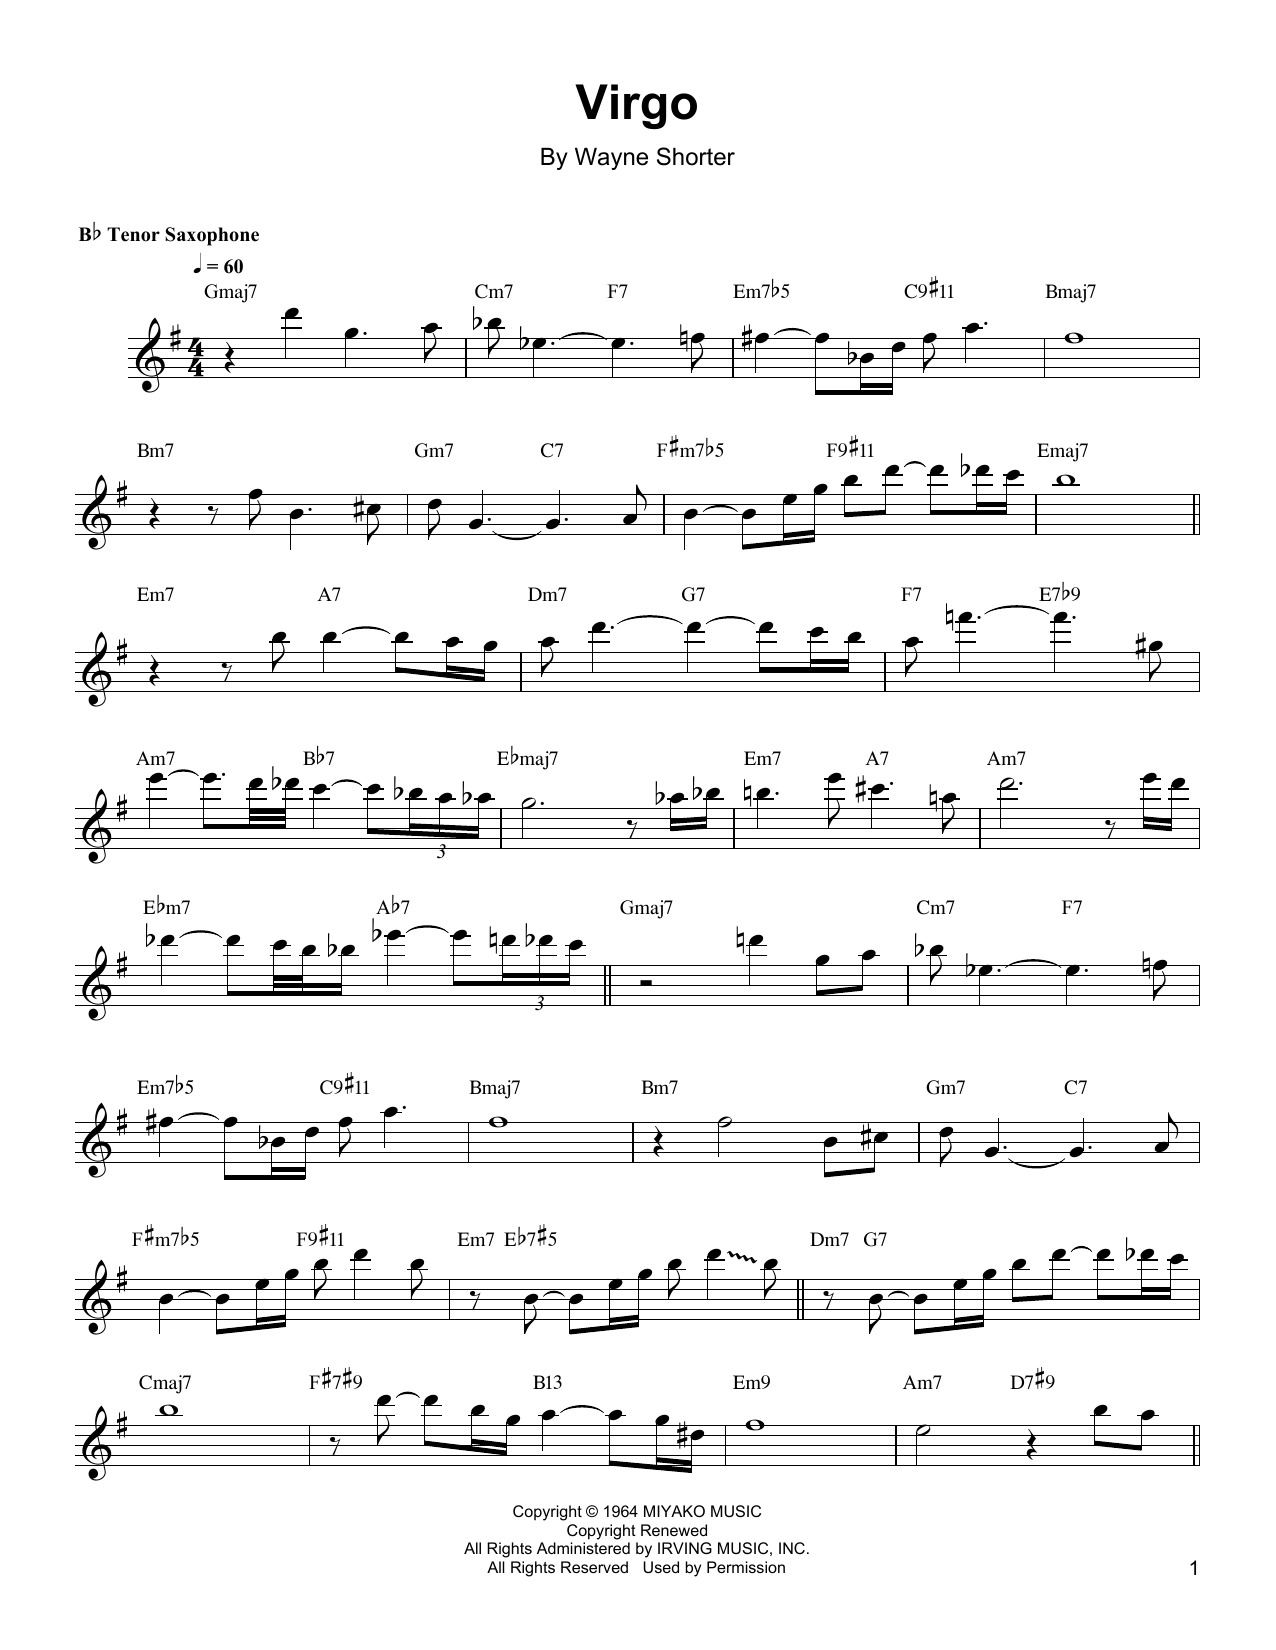 Virgo Sheet Music